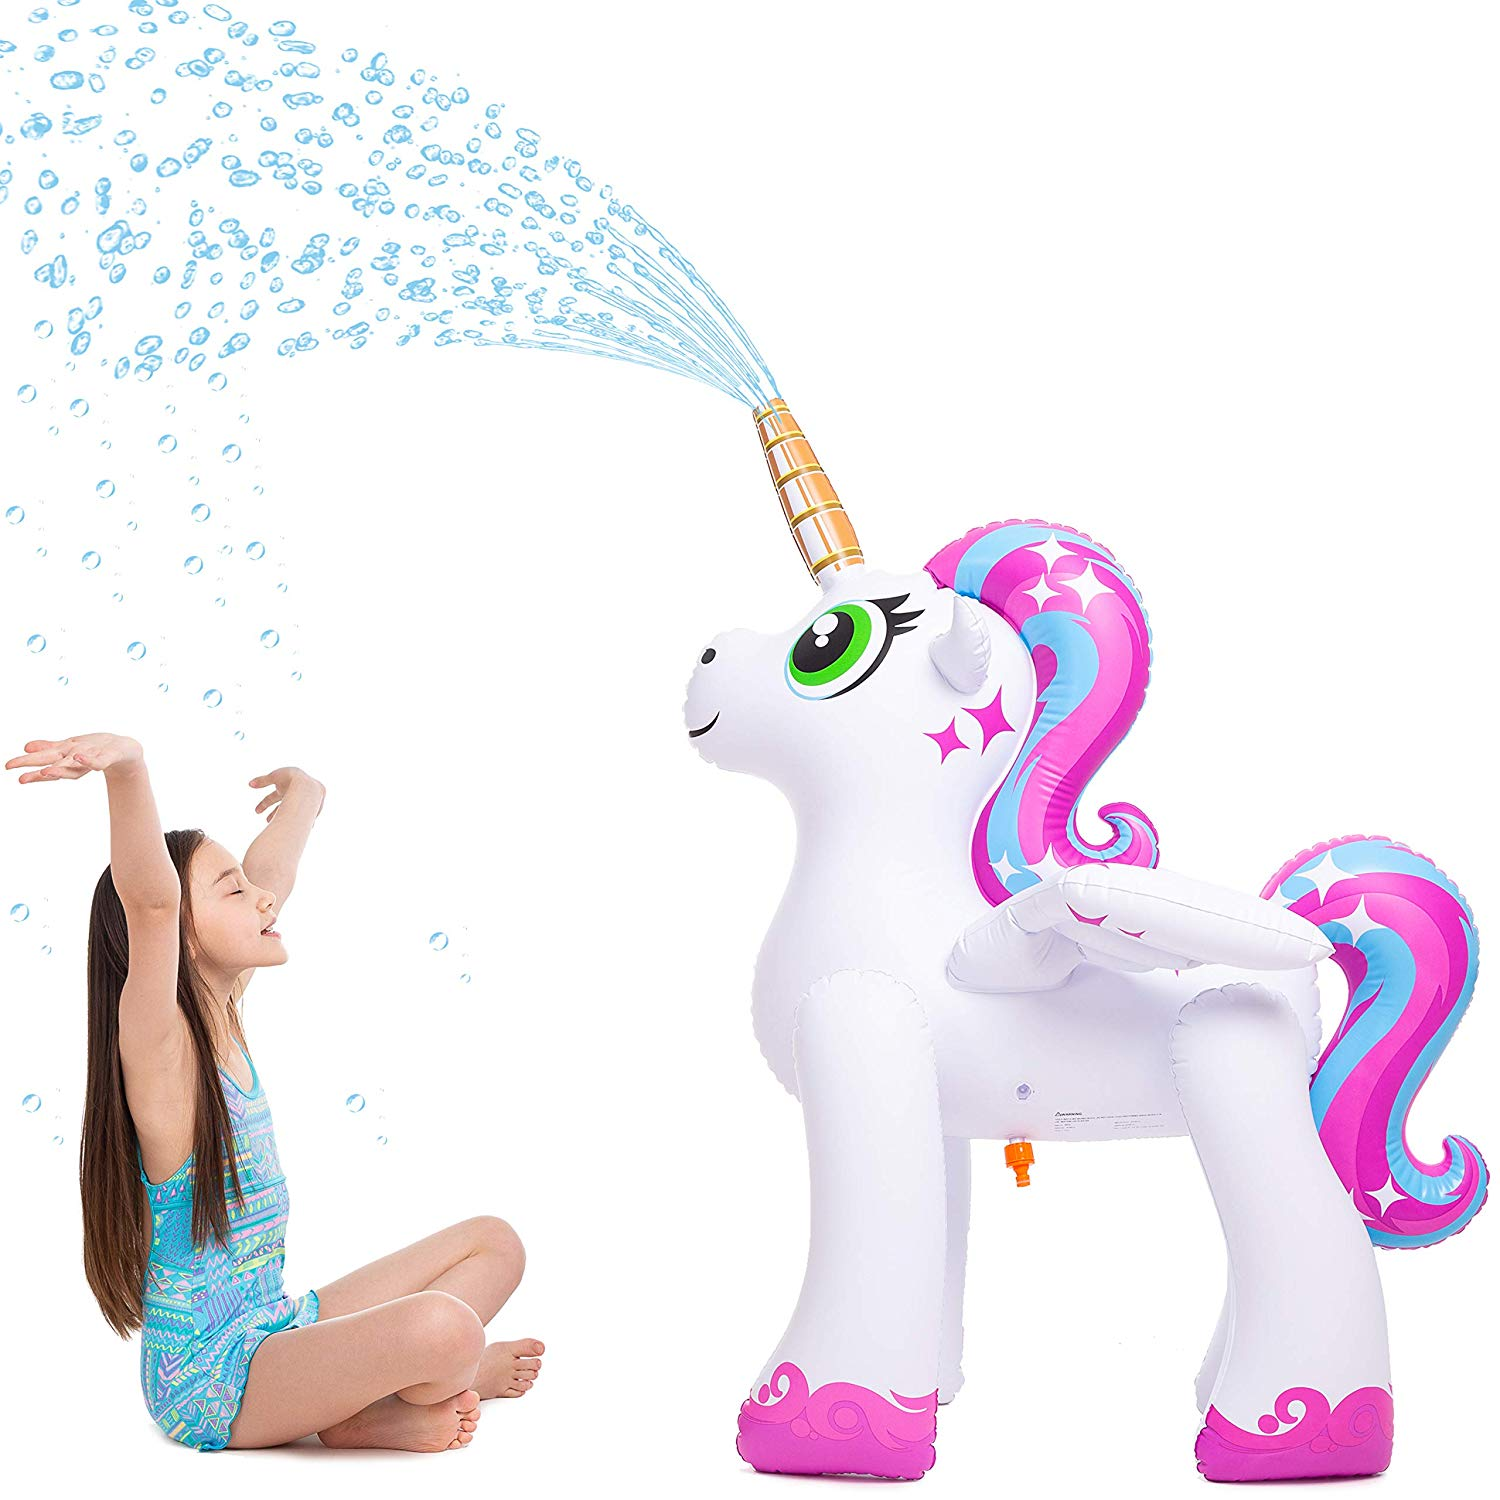 JOYIN Inflatable Rainbow Unicorn Yard Sprinkler